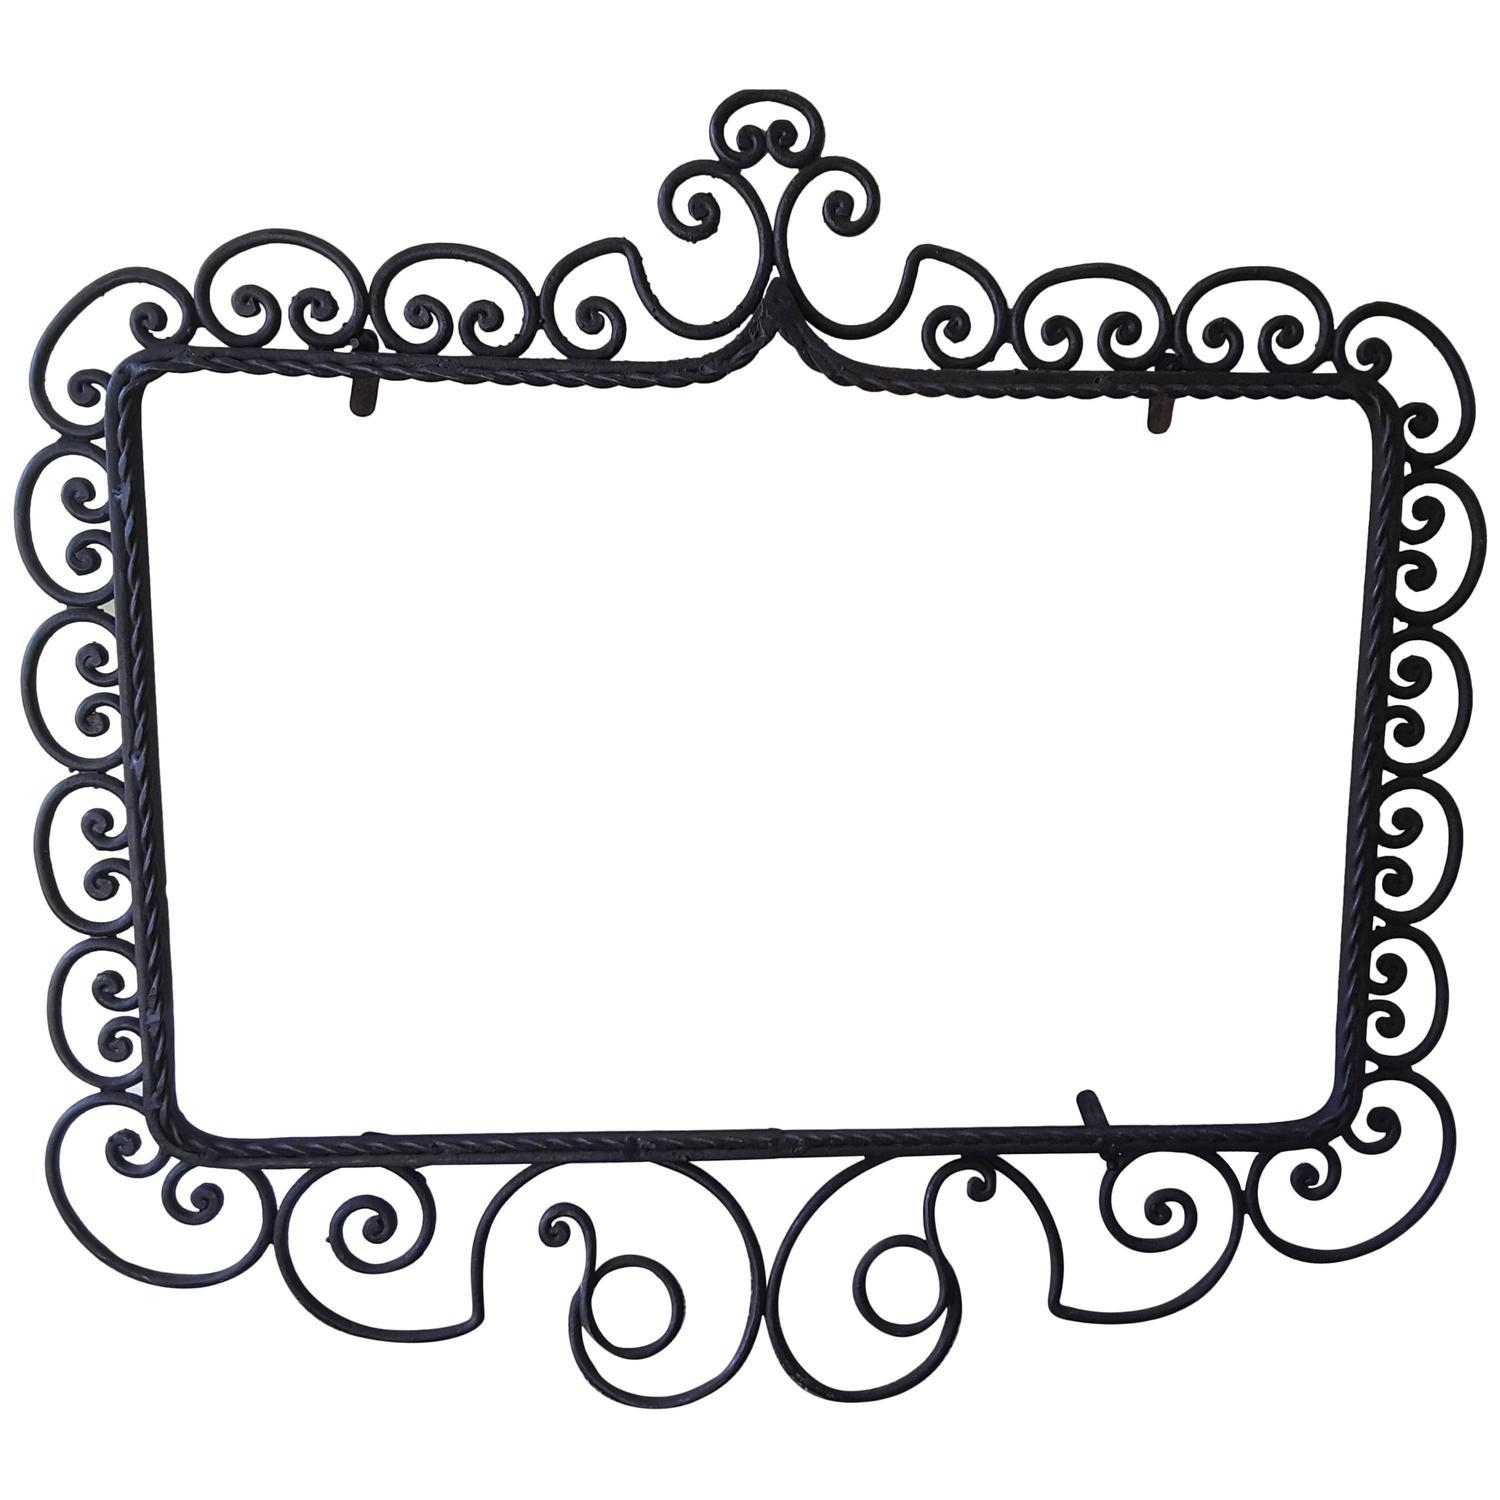 Wrought Iron Mirror/picture Frame, Hand Forged, Late Victorian Throughout Black Wrought Iron Mirrors (Image 18 of 20)